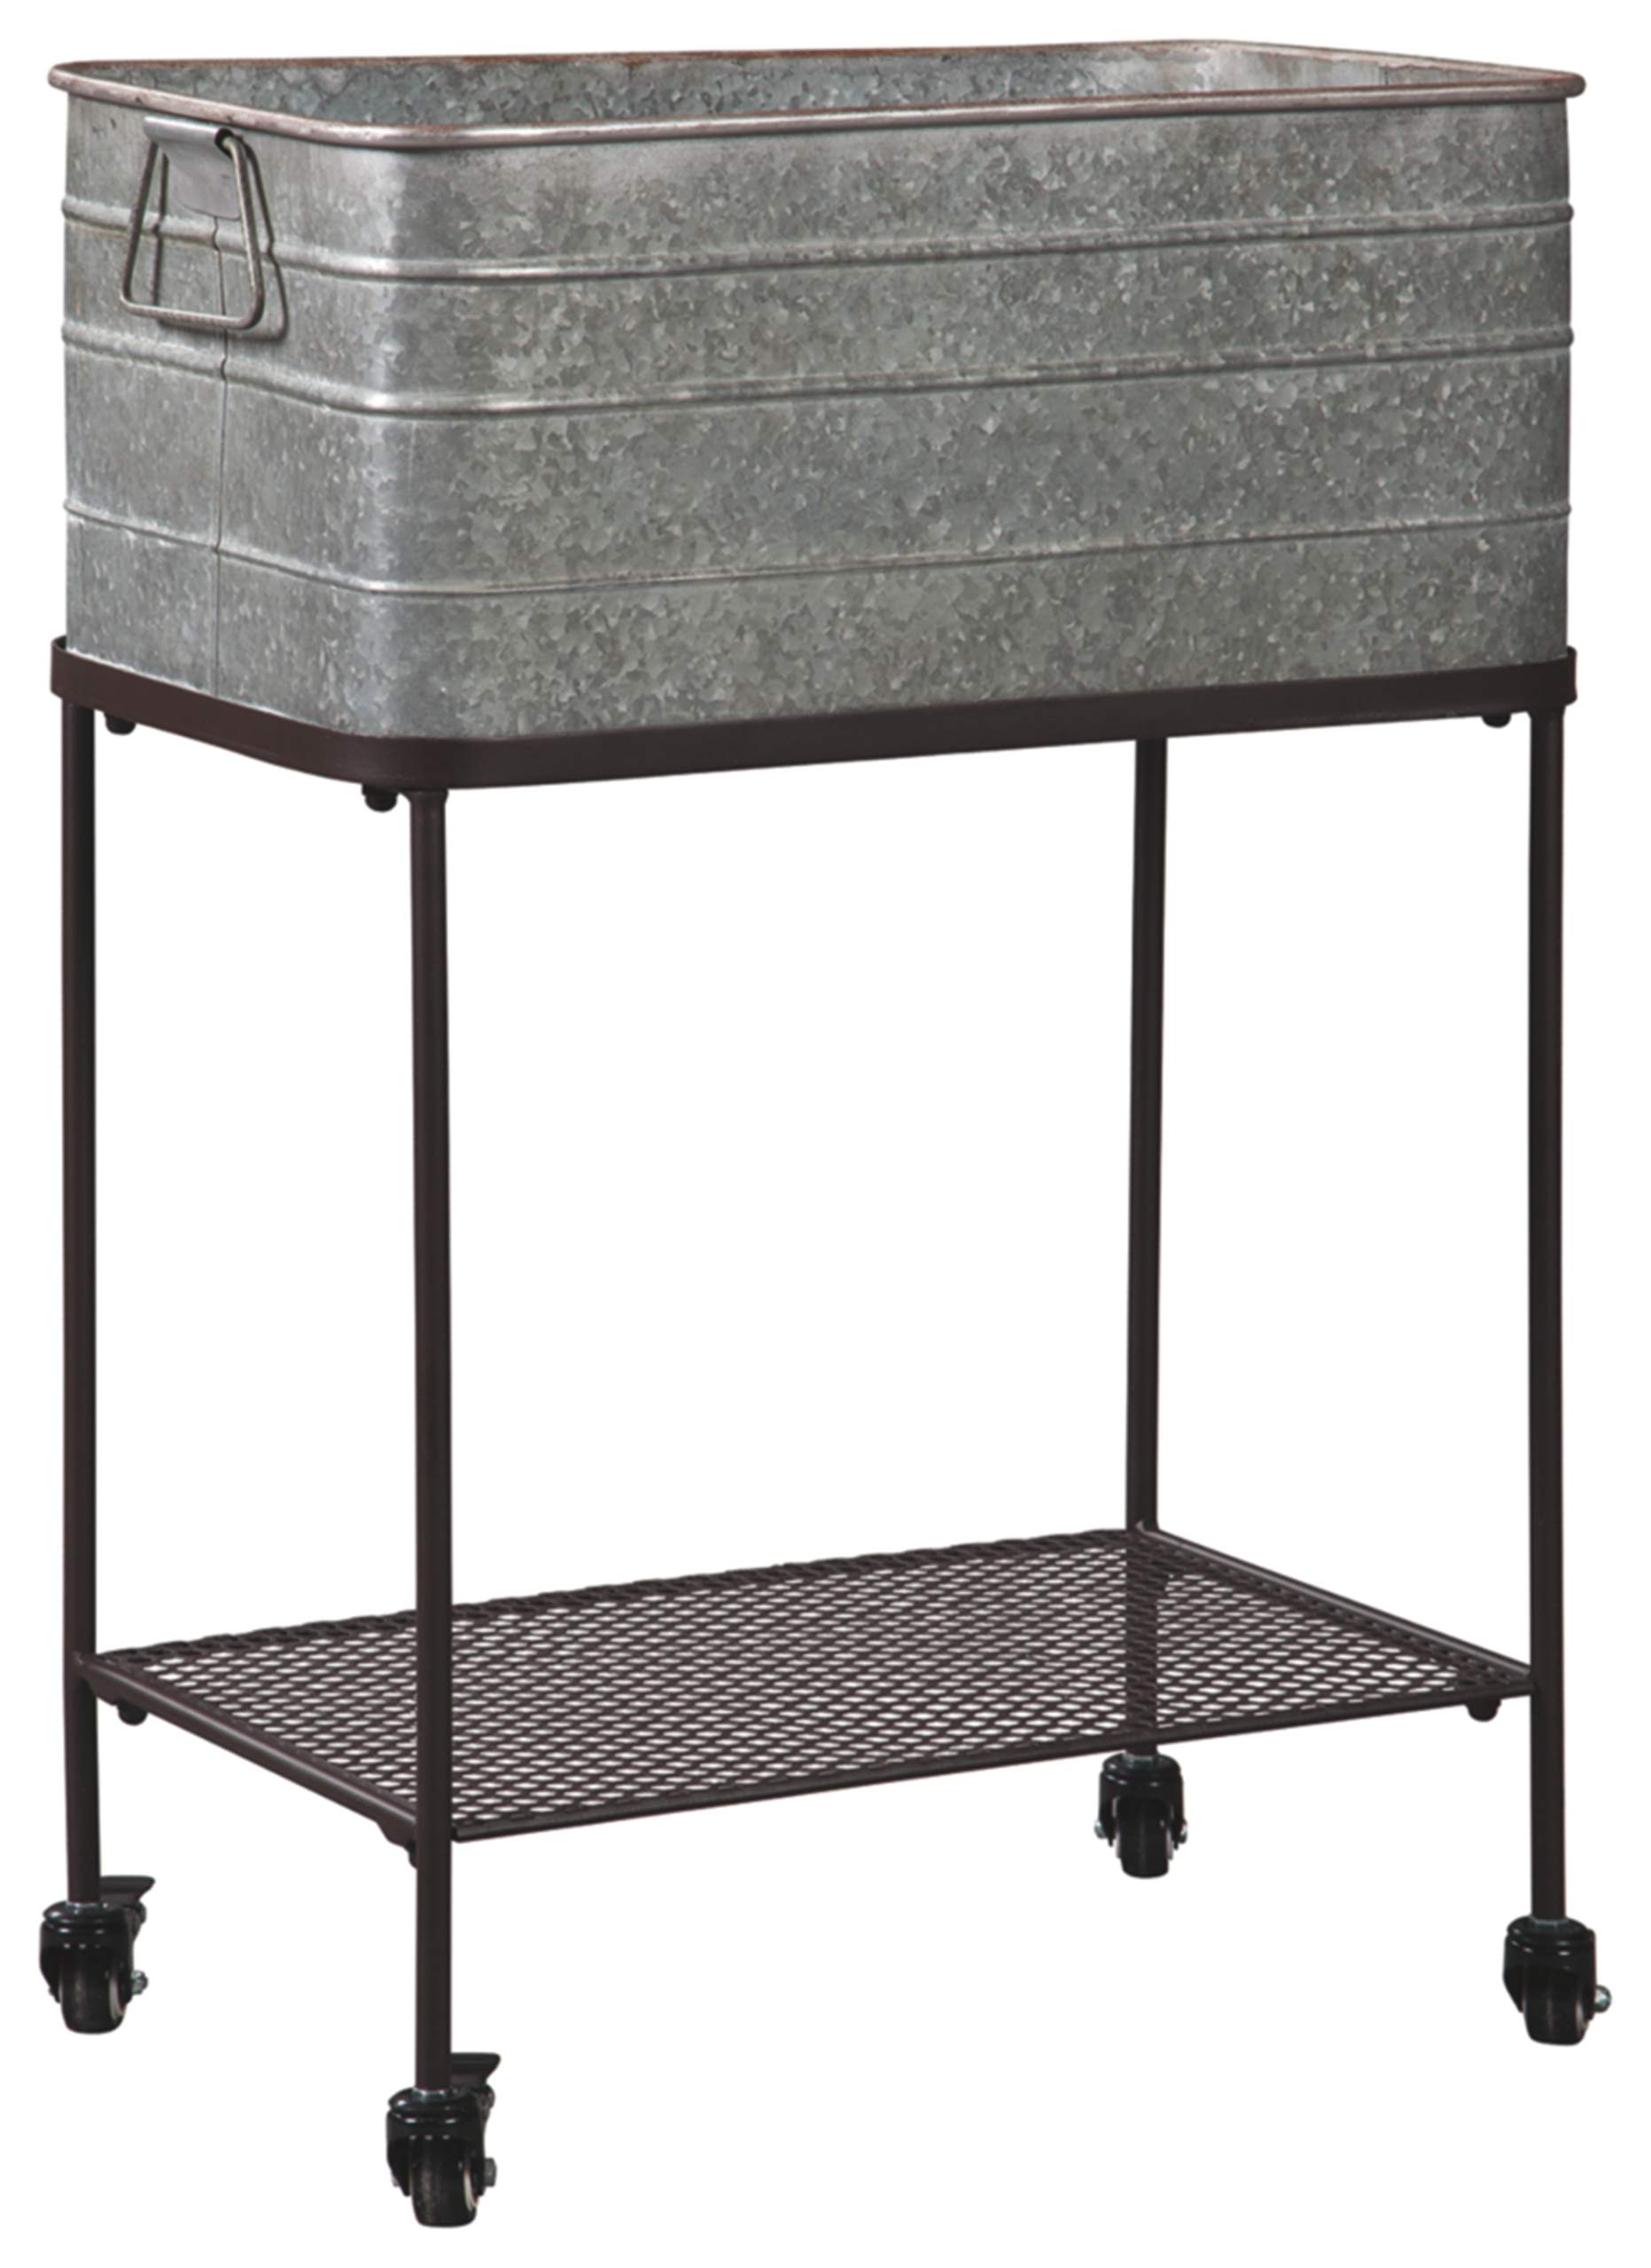 Ashley Furniture Signature Design - Vossman Beverage Tub - Antique Gray/Brown by Signature Design by Ashley